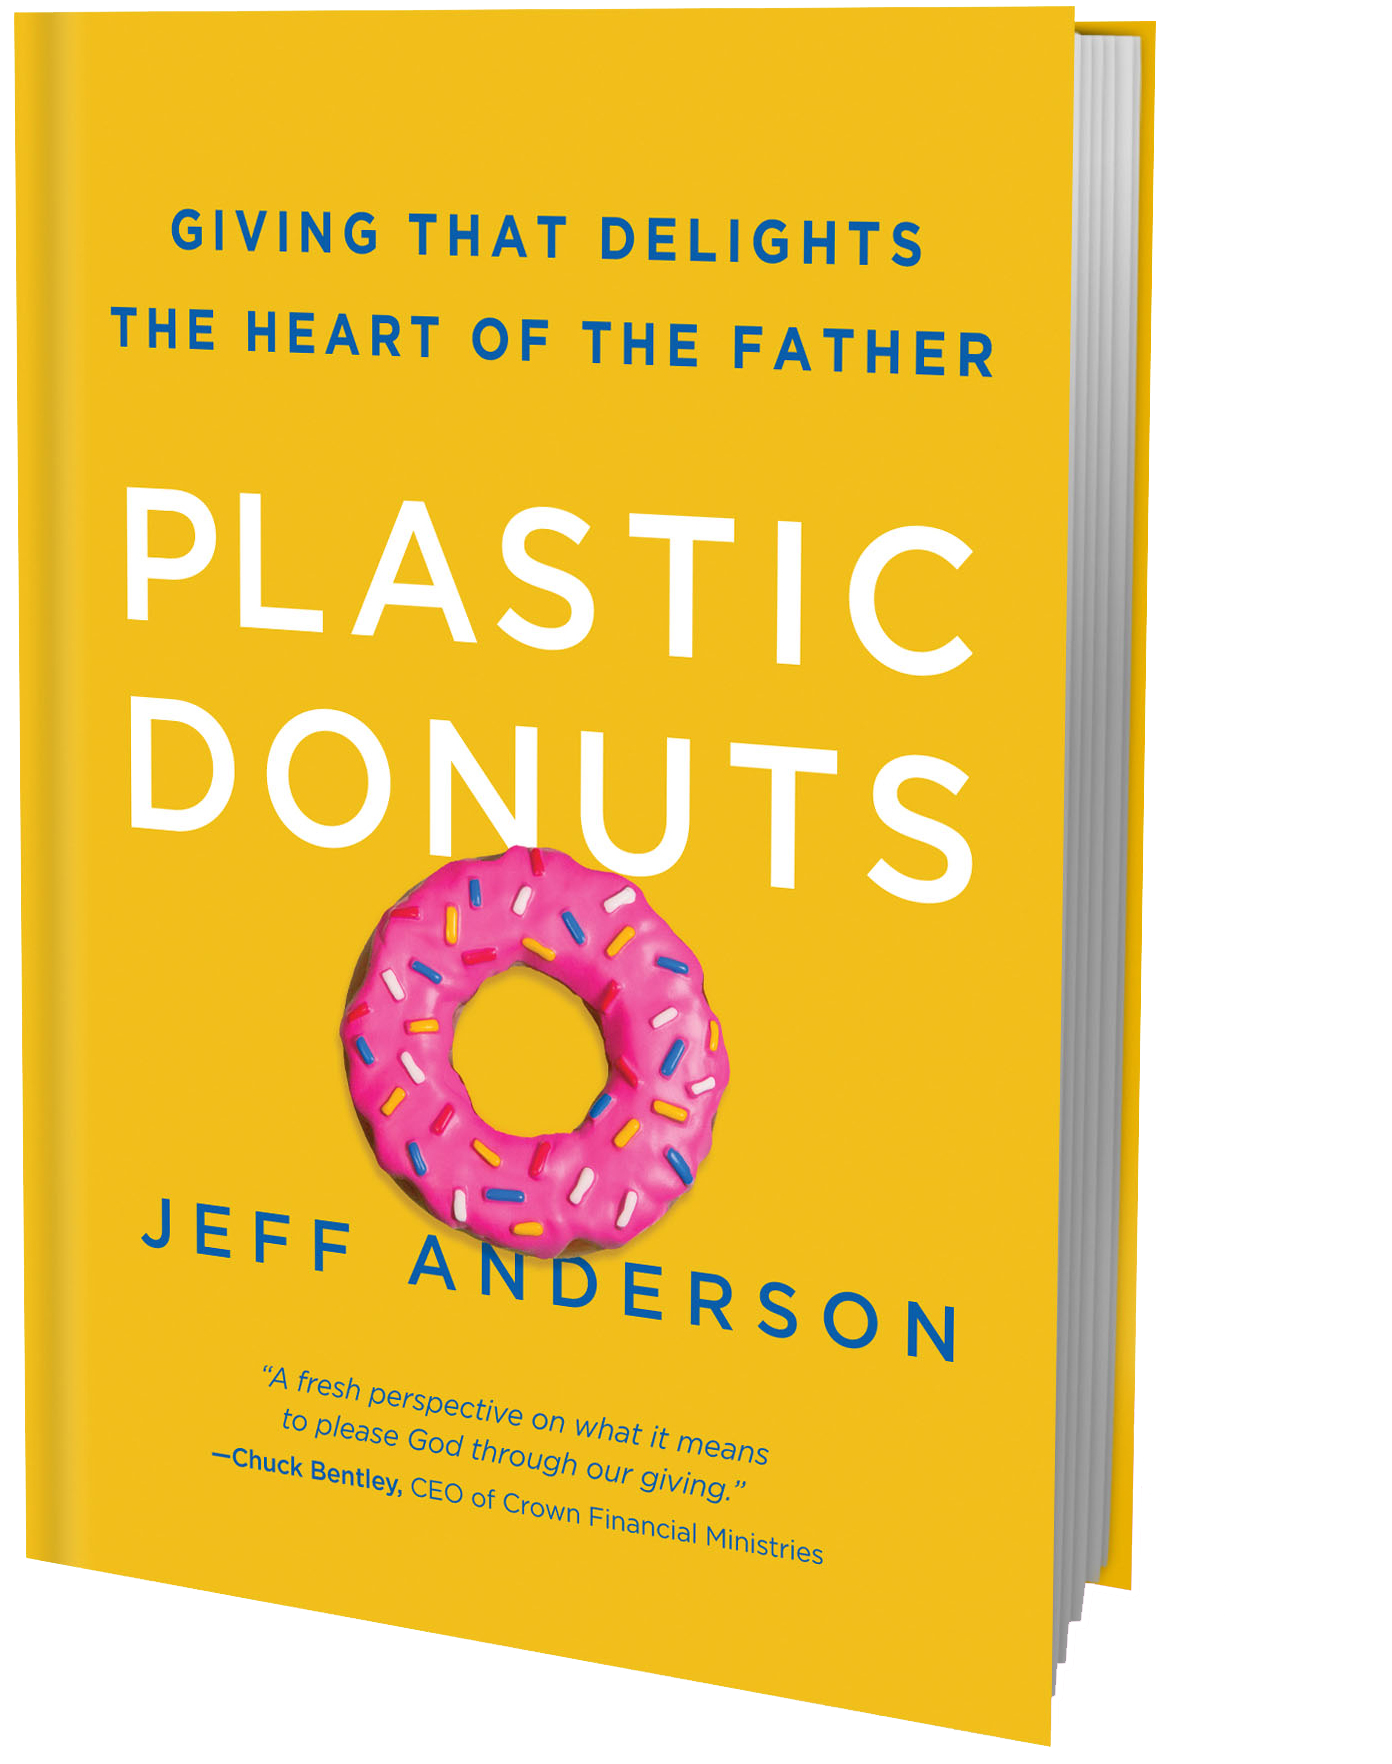 FREE GIFT - Sign up for the Giving Challenge and receive a free copy of Plastic Donuts: Giving that Delights the Heart of the Father by Jeff Anderson. It's one of our favorite books on giving. It will revolutionize the way you look at giving to God.